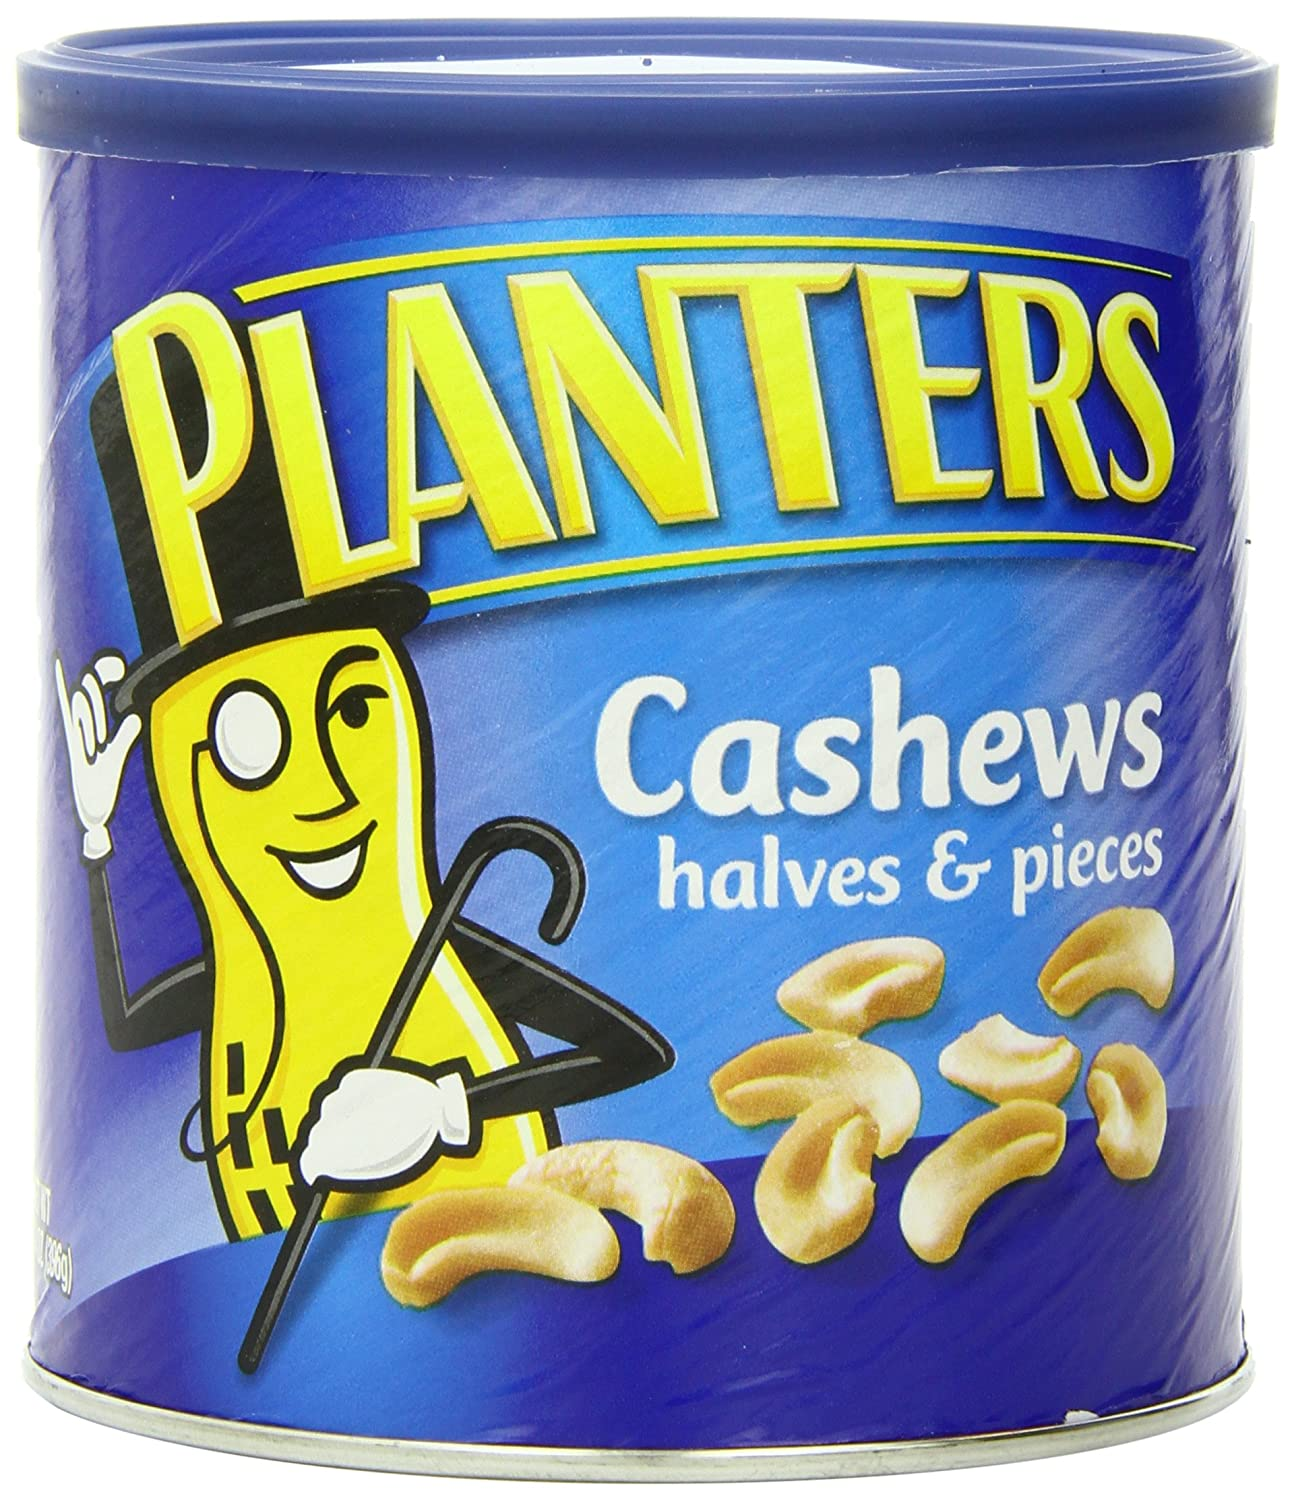 Planters Cashew Halves and Pieces, 14-Ounce (Pack of 3)